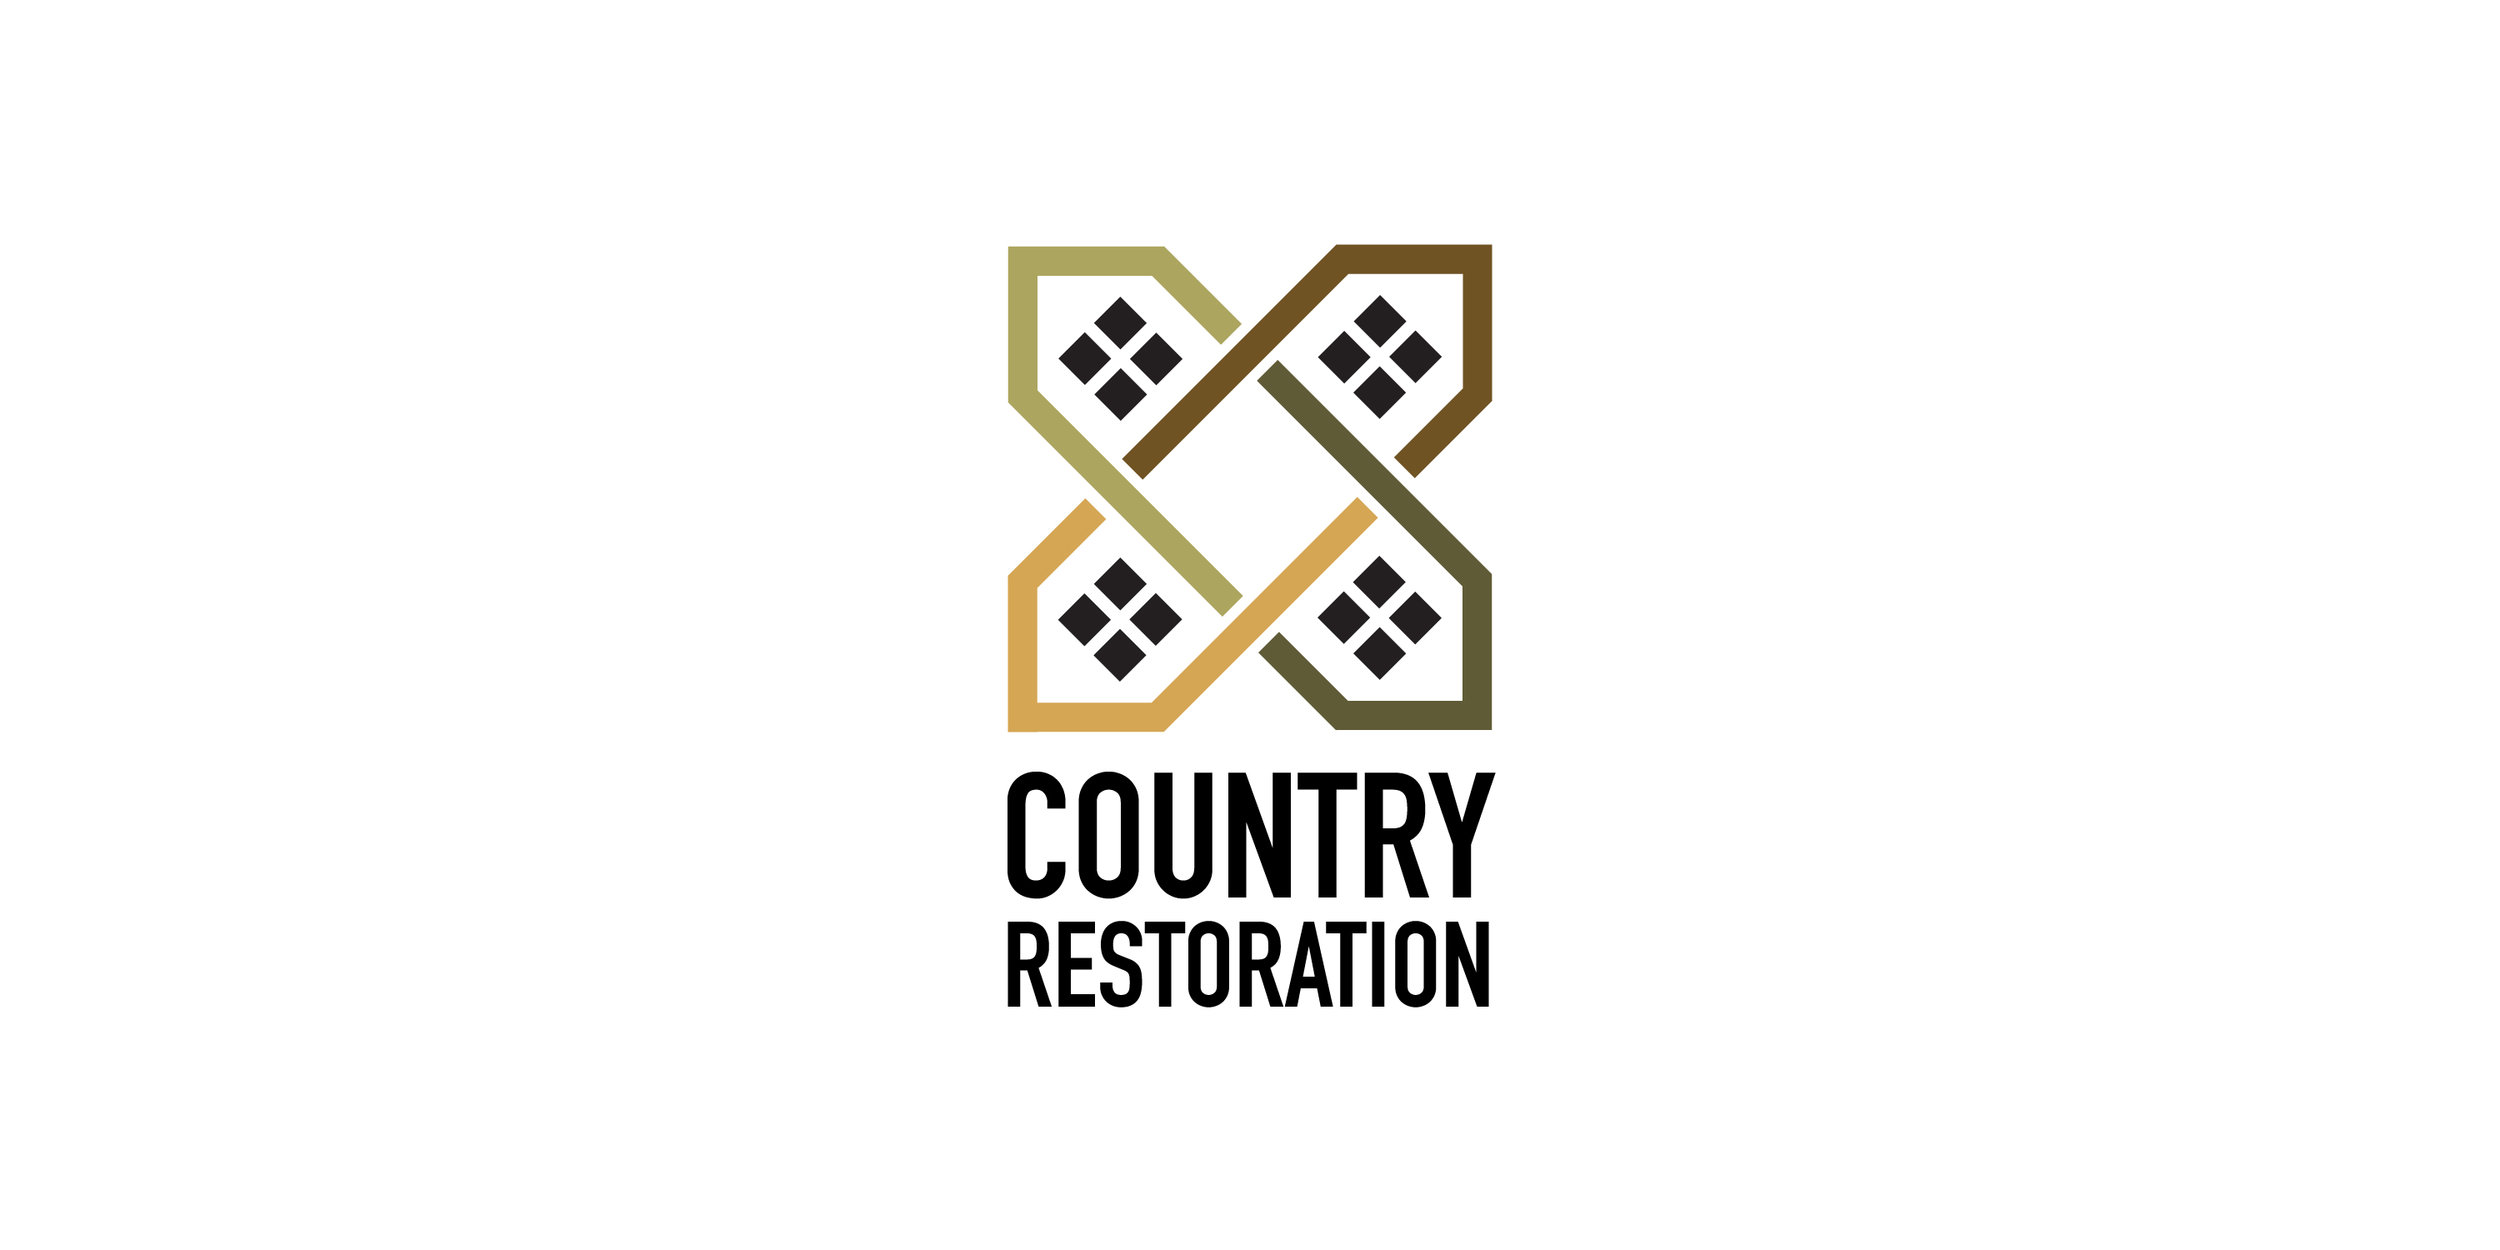 Country_Restoration_6.jpg